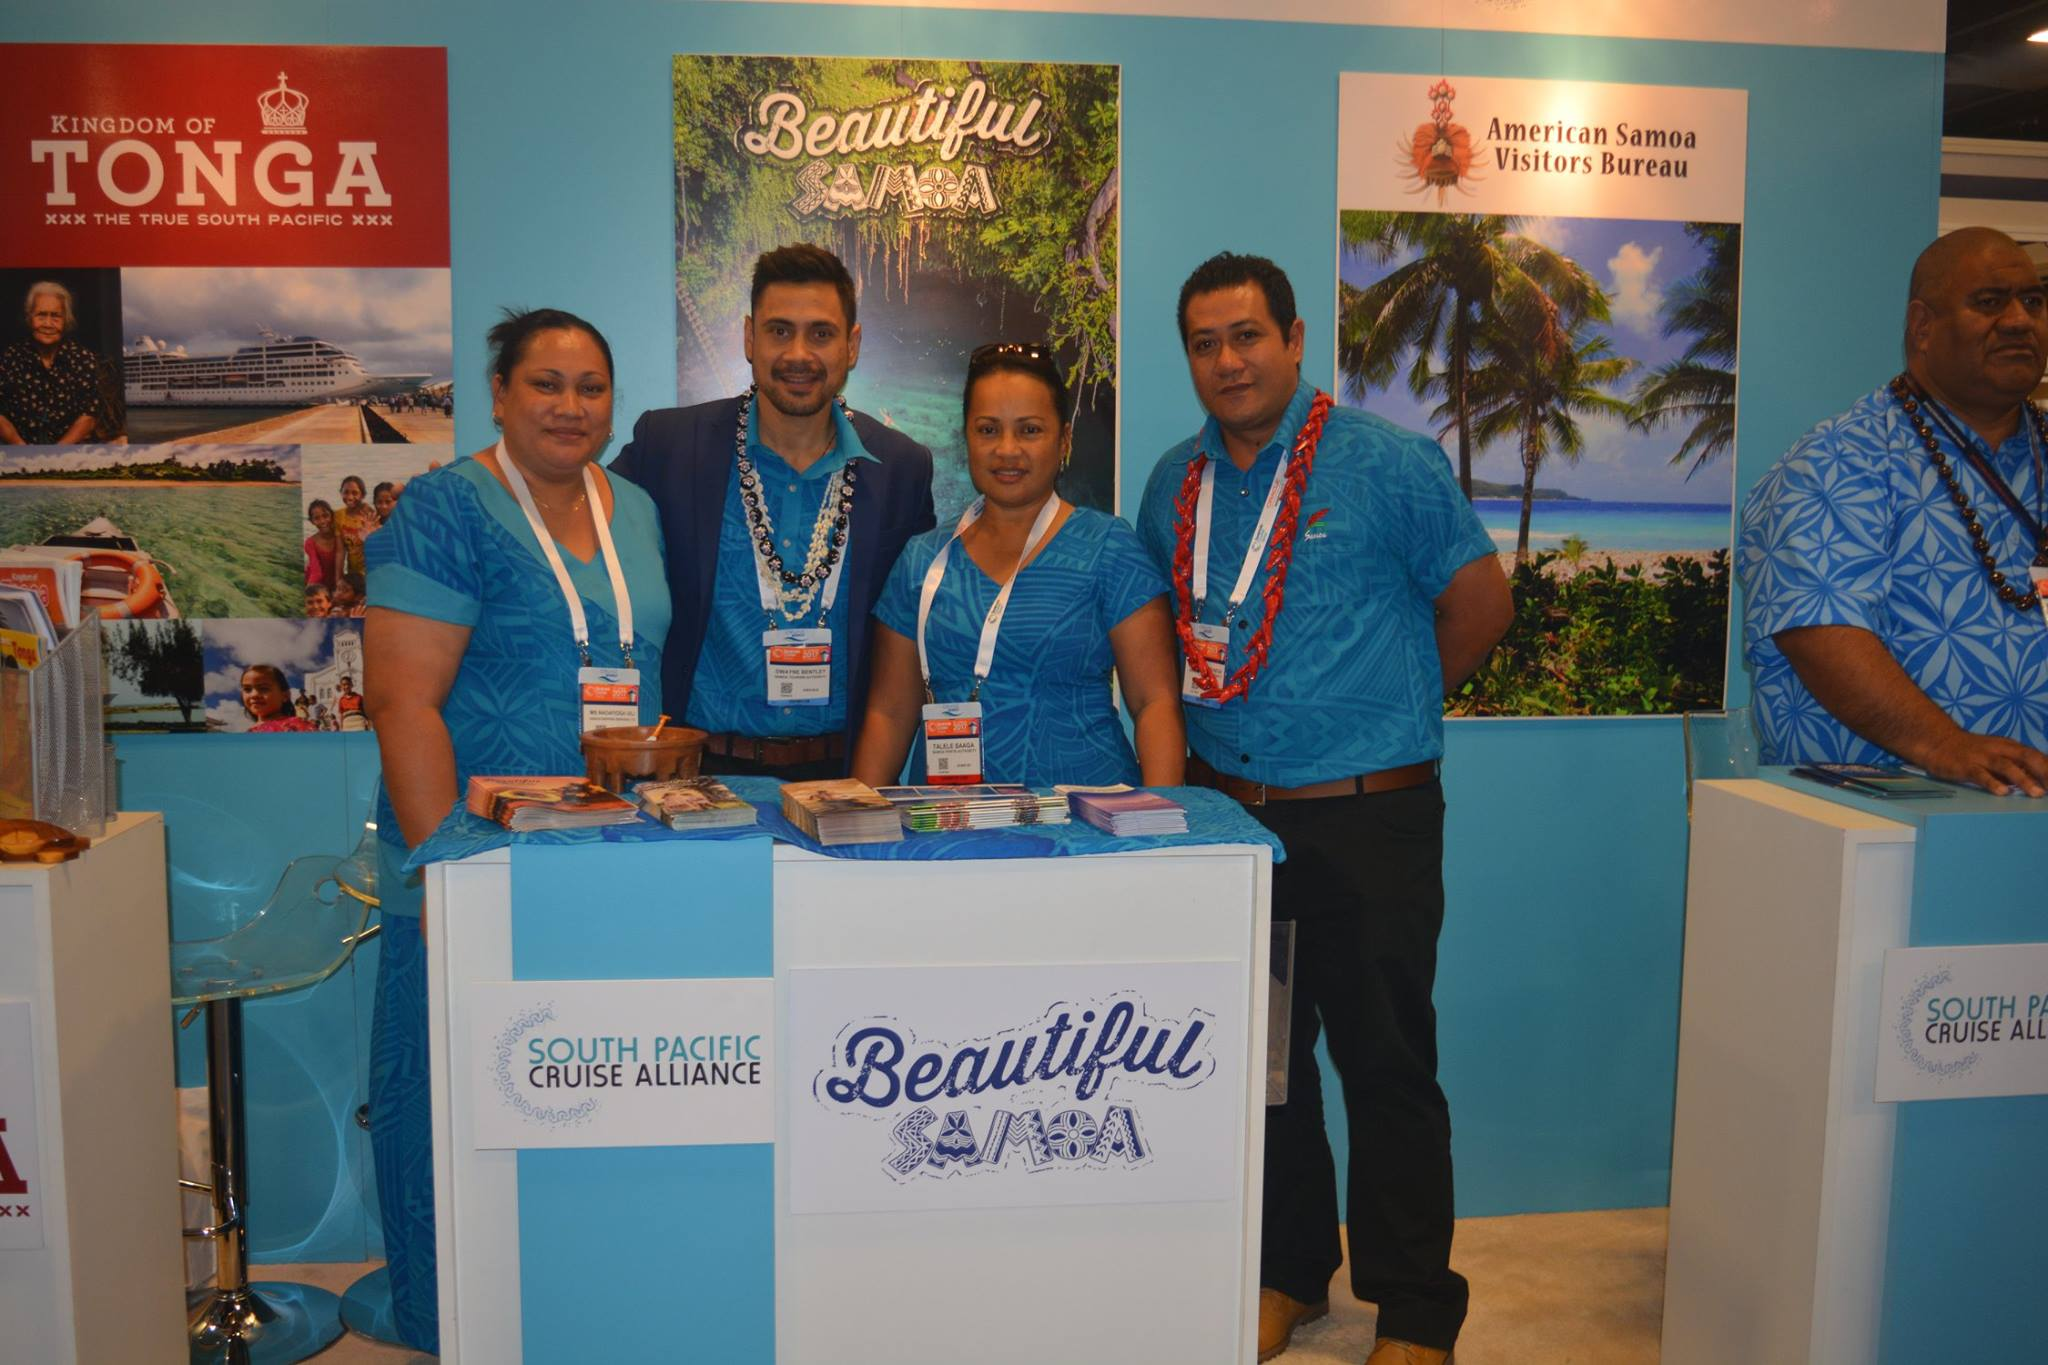 Seatrade2017 in Miami